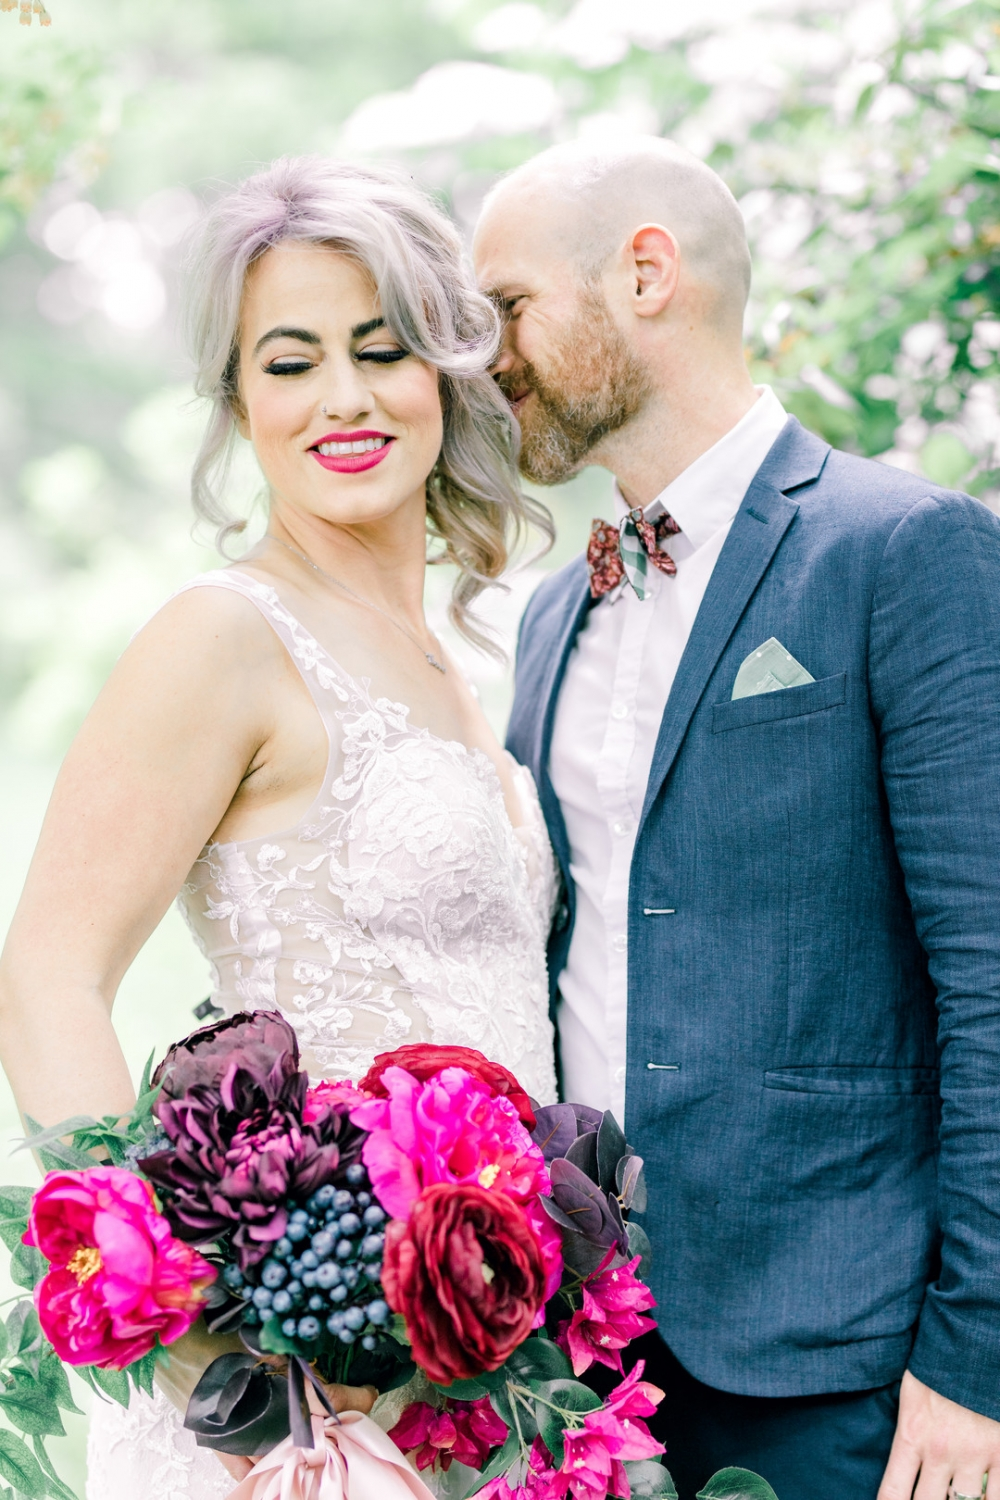 Bride with pink lipstick and matching bouquet